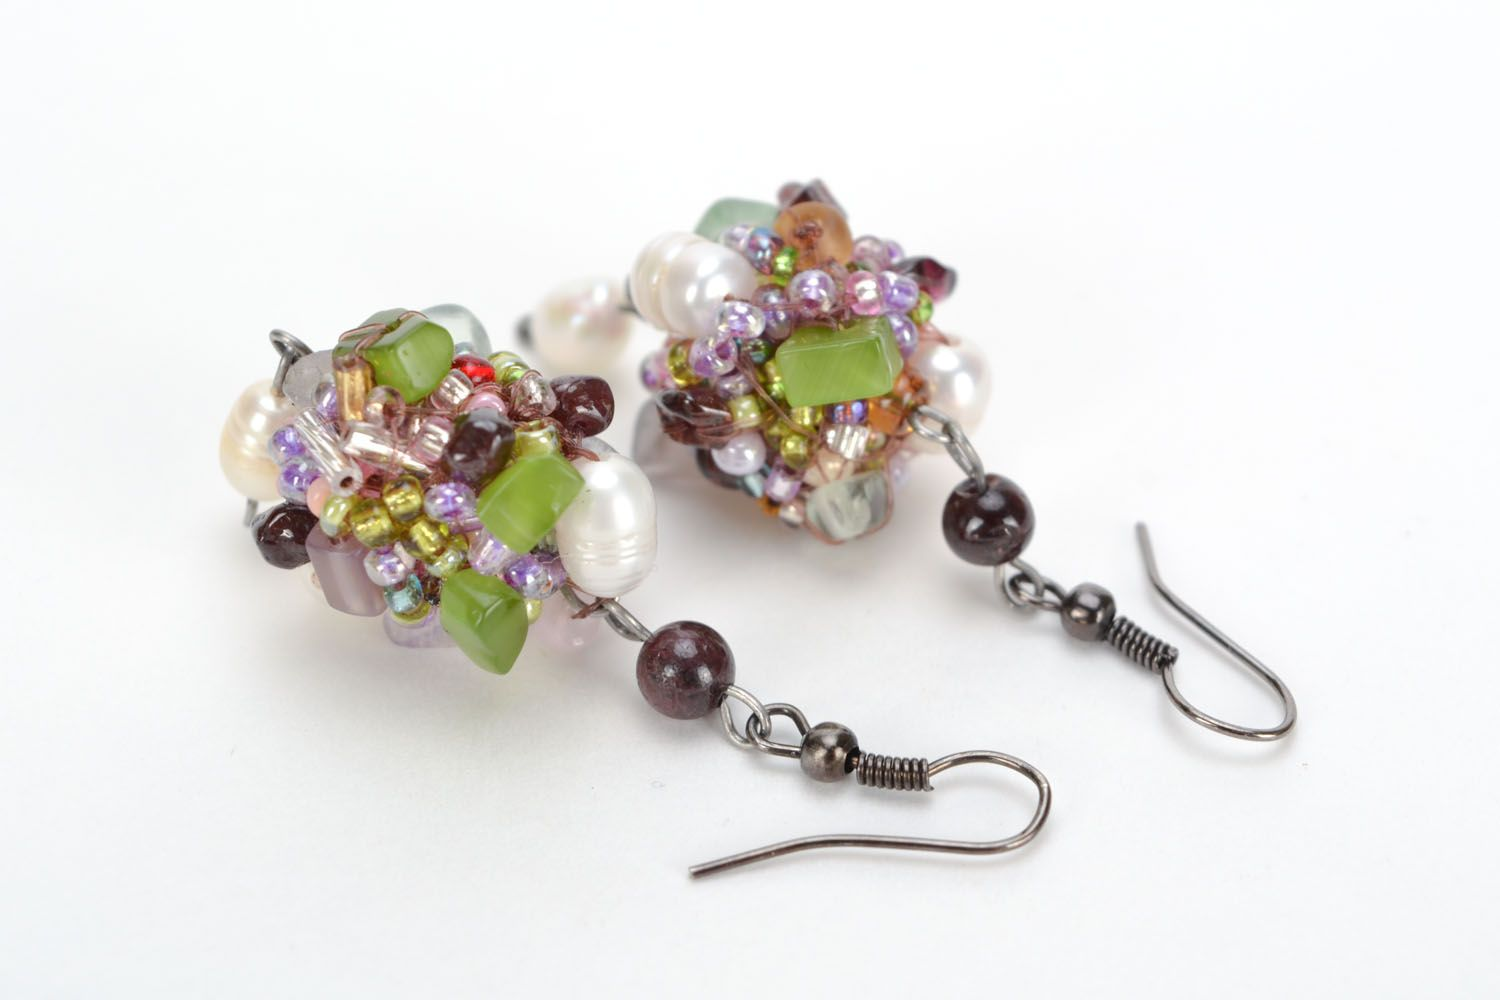 Homemade earrings with river pearls and natural stones photo 3